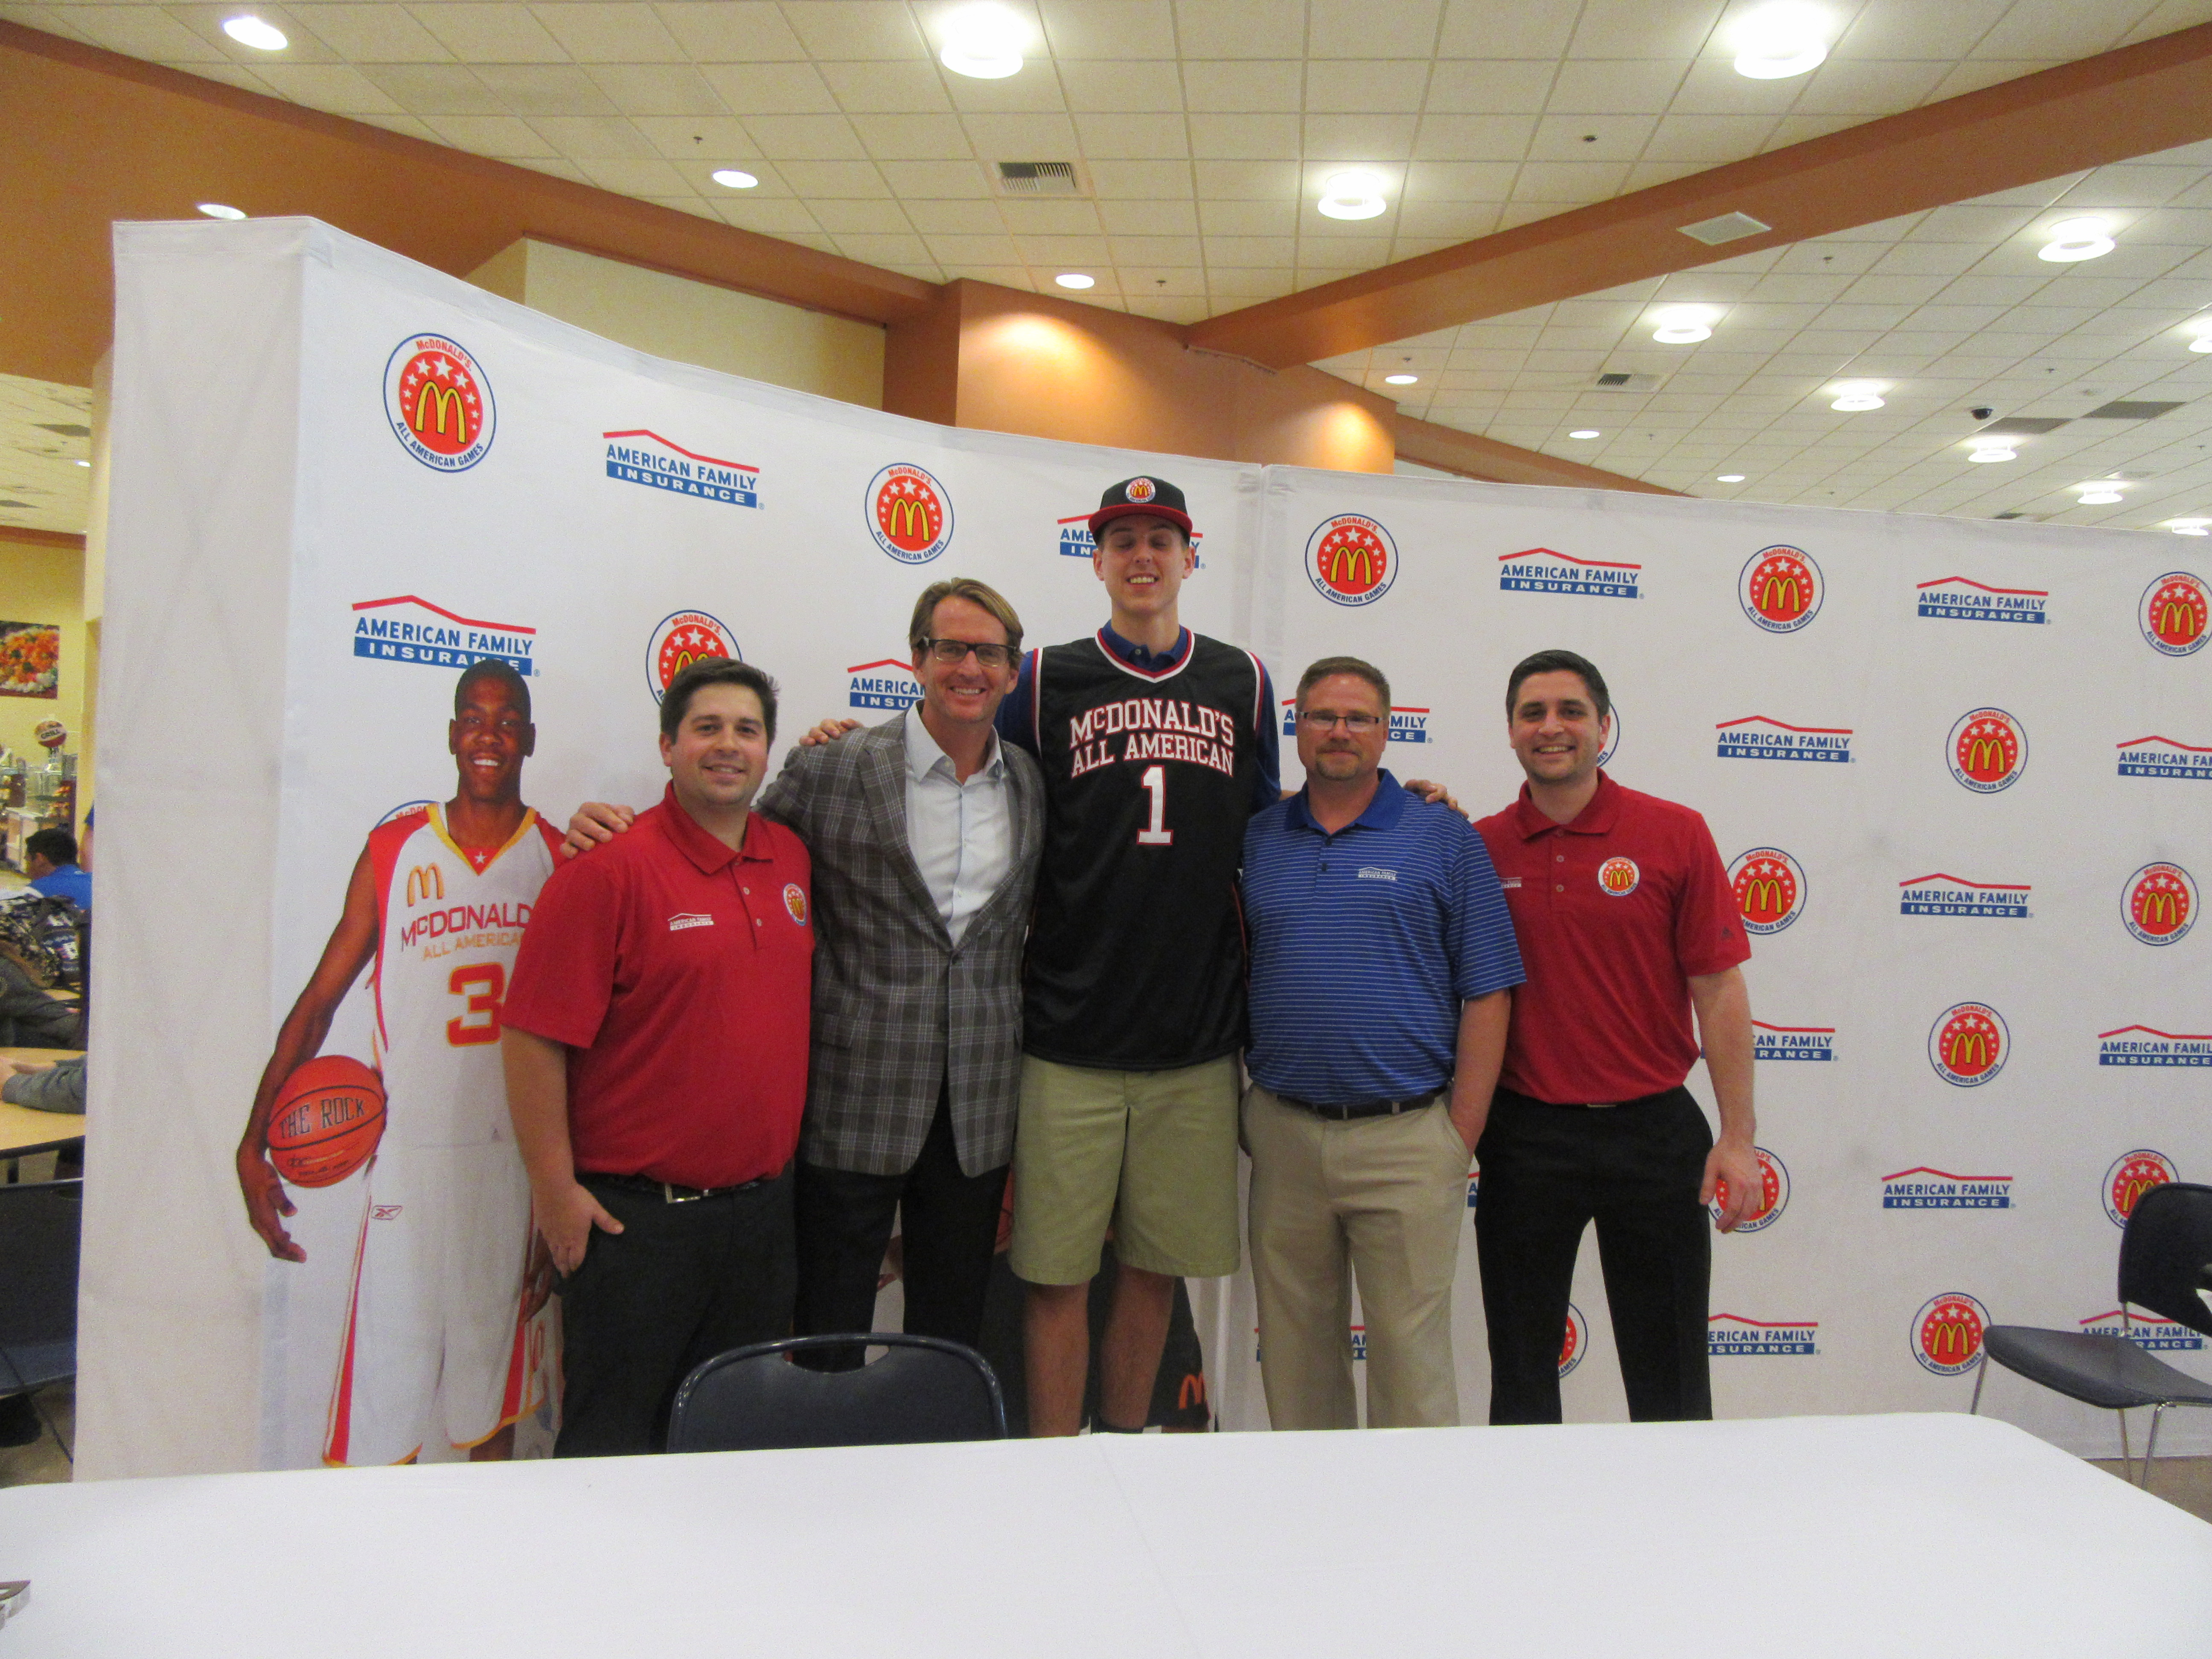 Zach Collins poses with representatives from American Family Insurance and McDonald's (Photo: McDonald's All American Game)